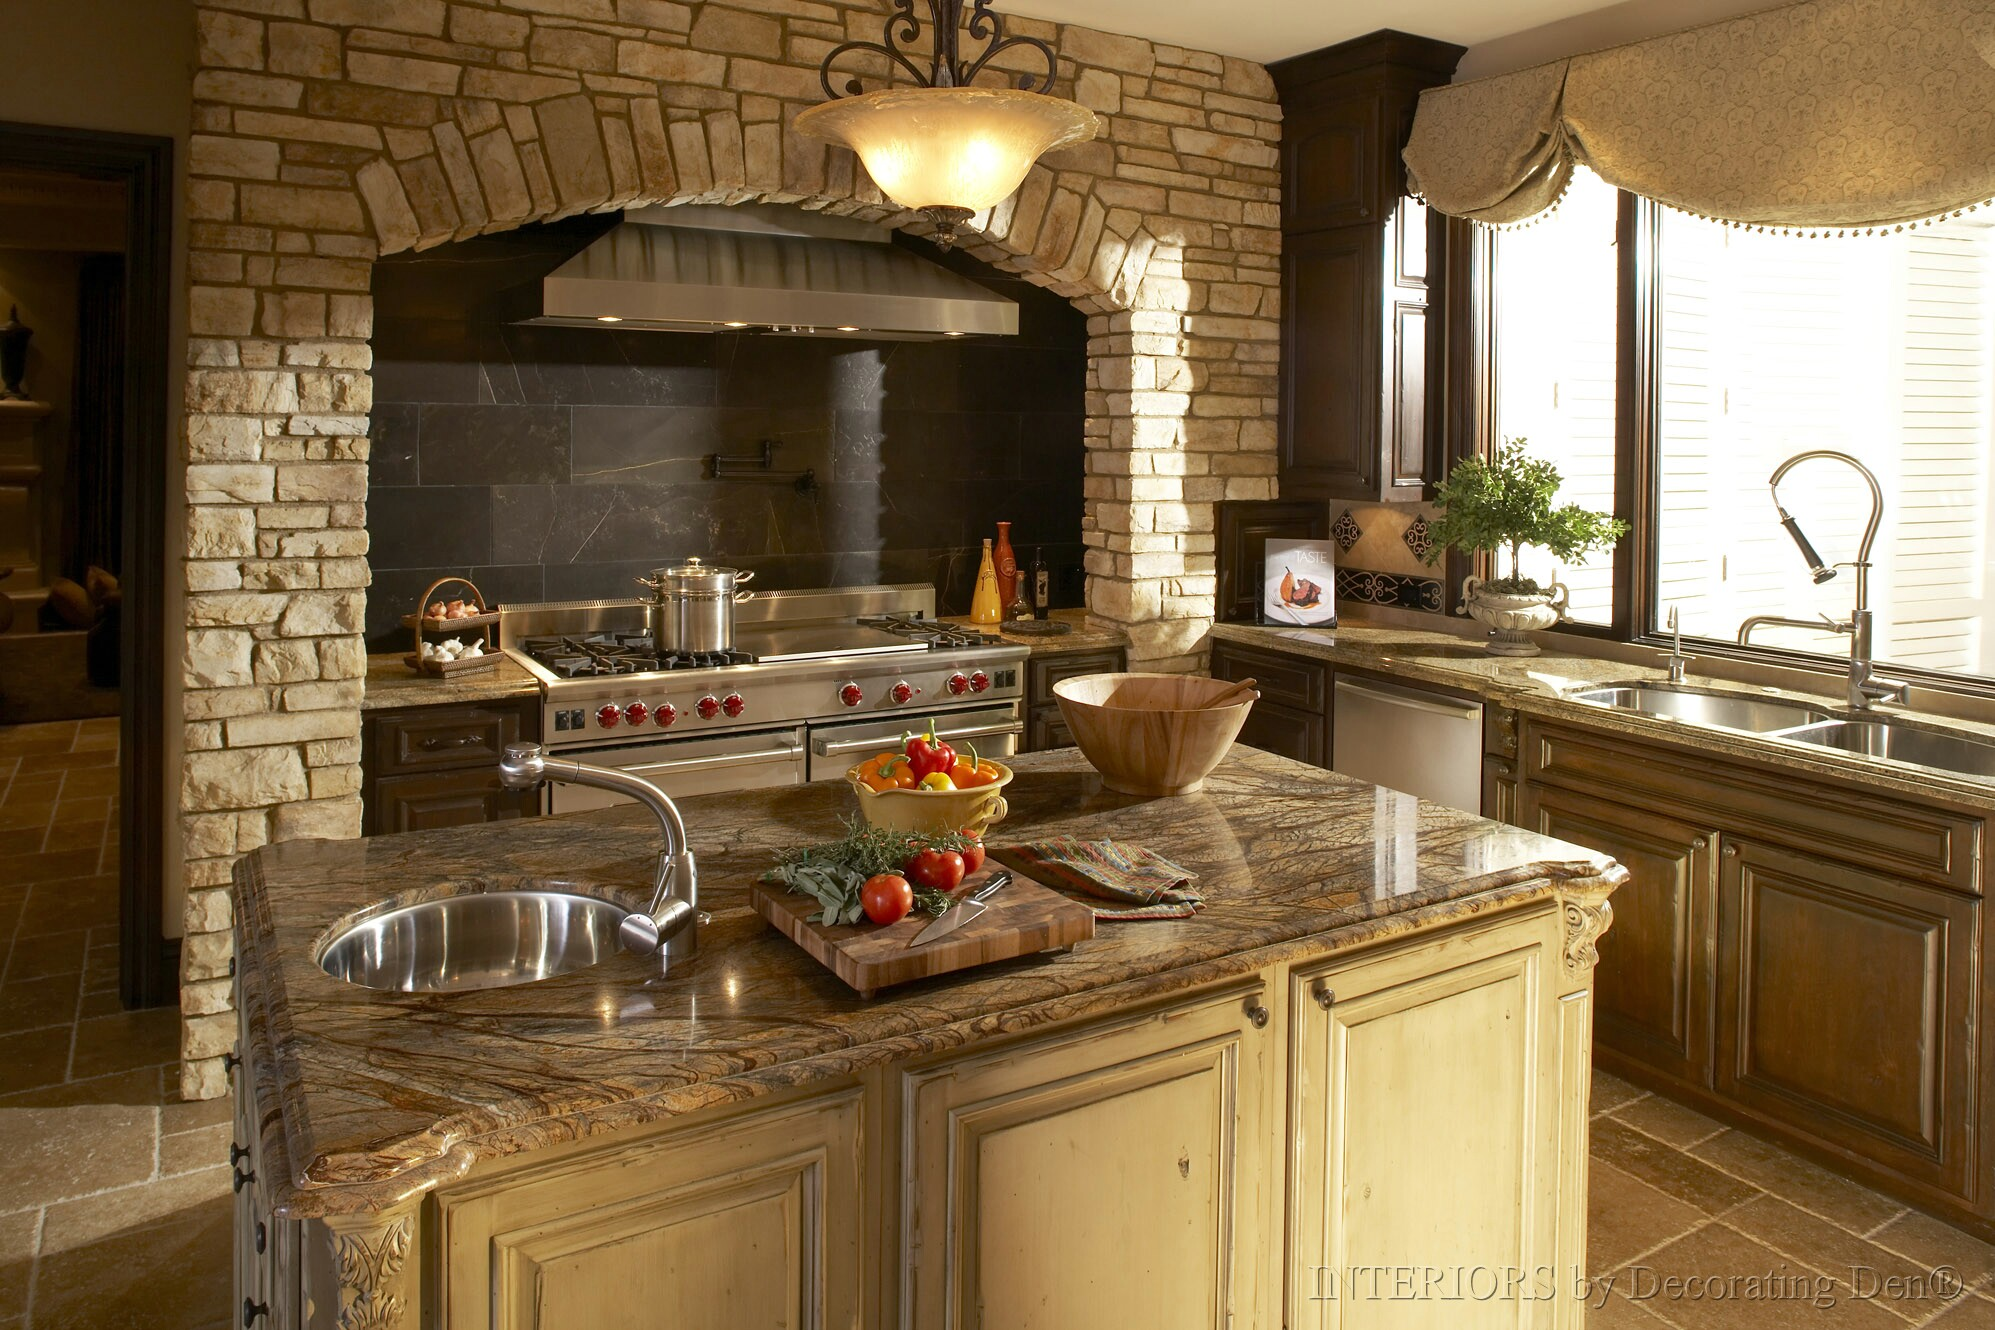 Hood kitchen range stone kitchen design photos - Granite kitchen design ...